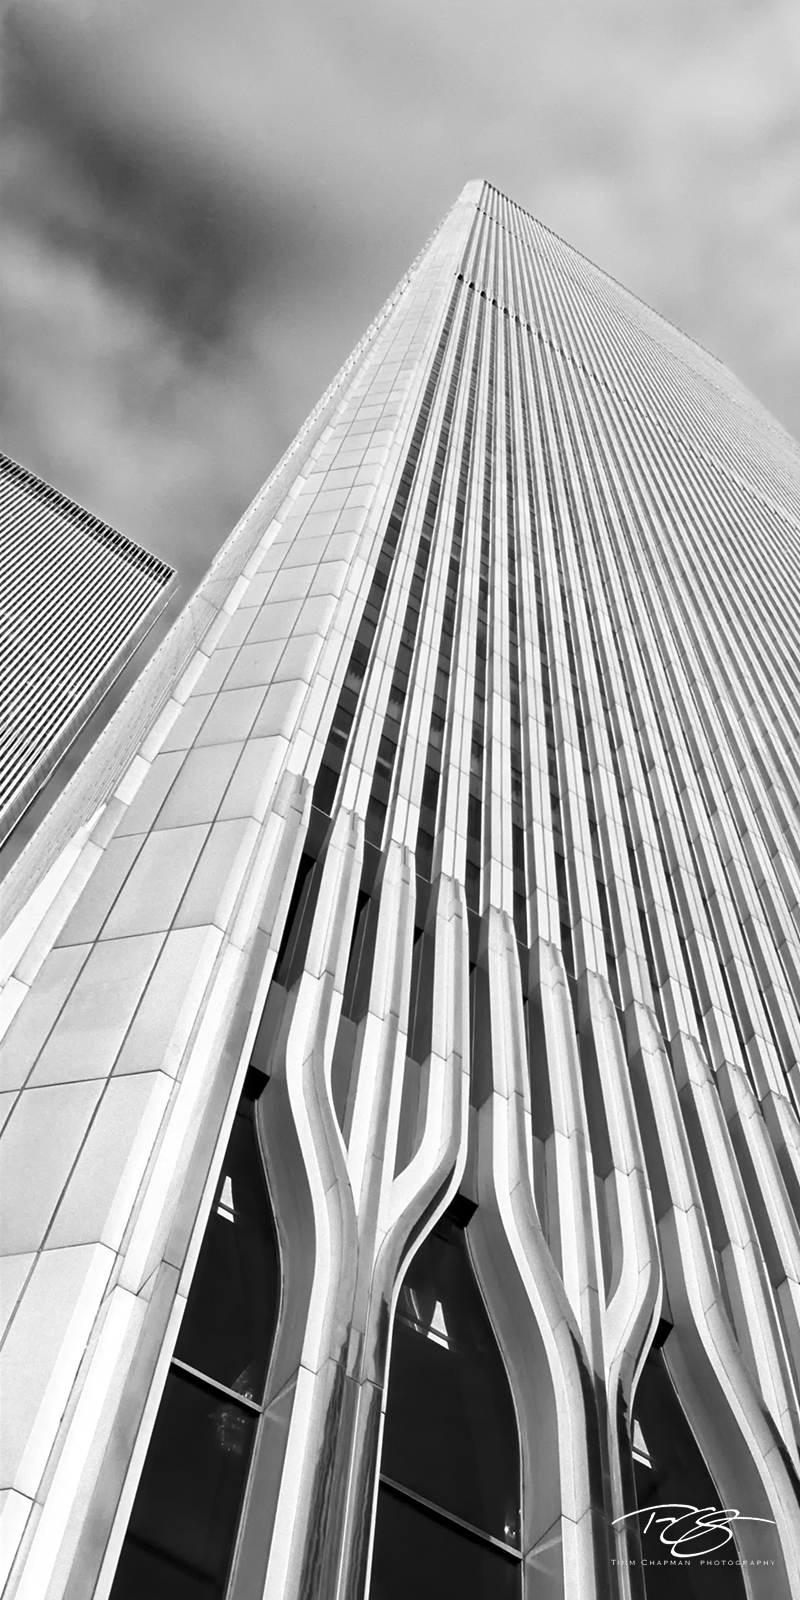 world trade center, wtc, twin towers, nyc, new york, manhattan, 9/11, architecture, skyscrapers, buildings, black and white, monochrome, photo